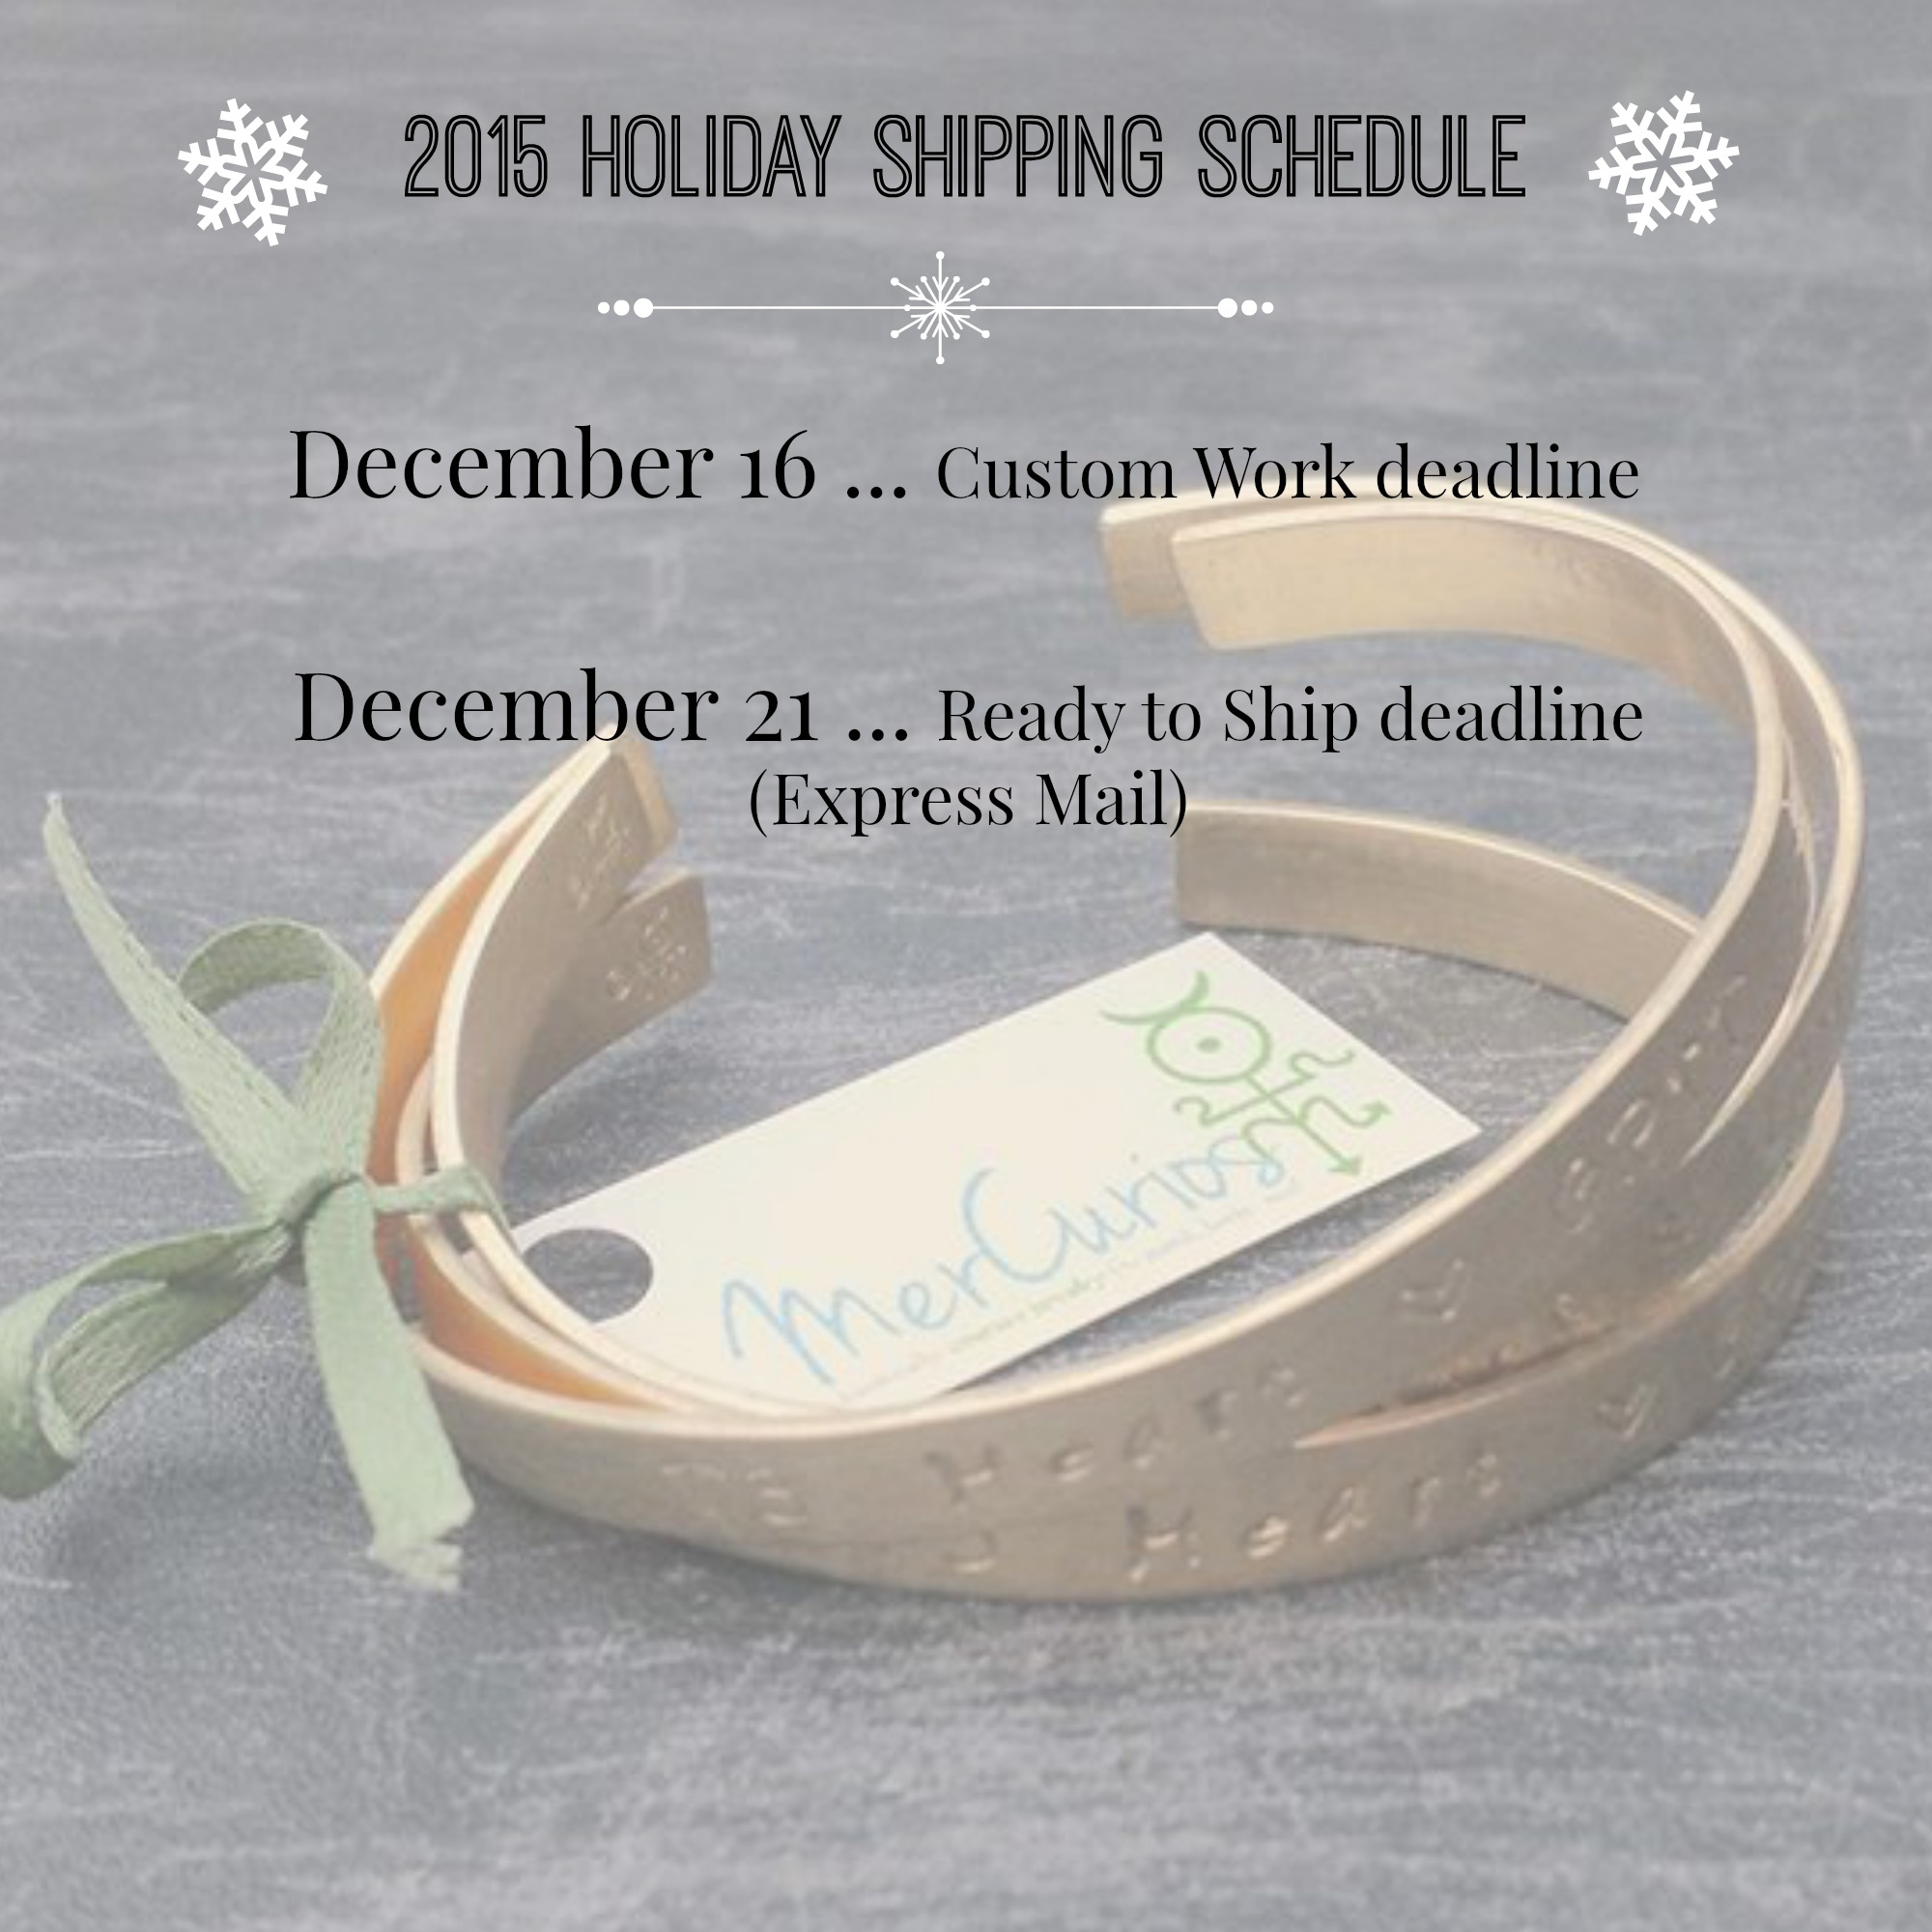 2015 Holiday Shipping Schedule.jpg